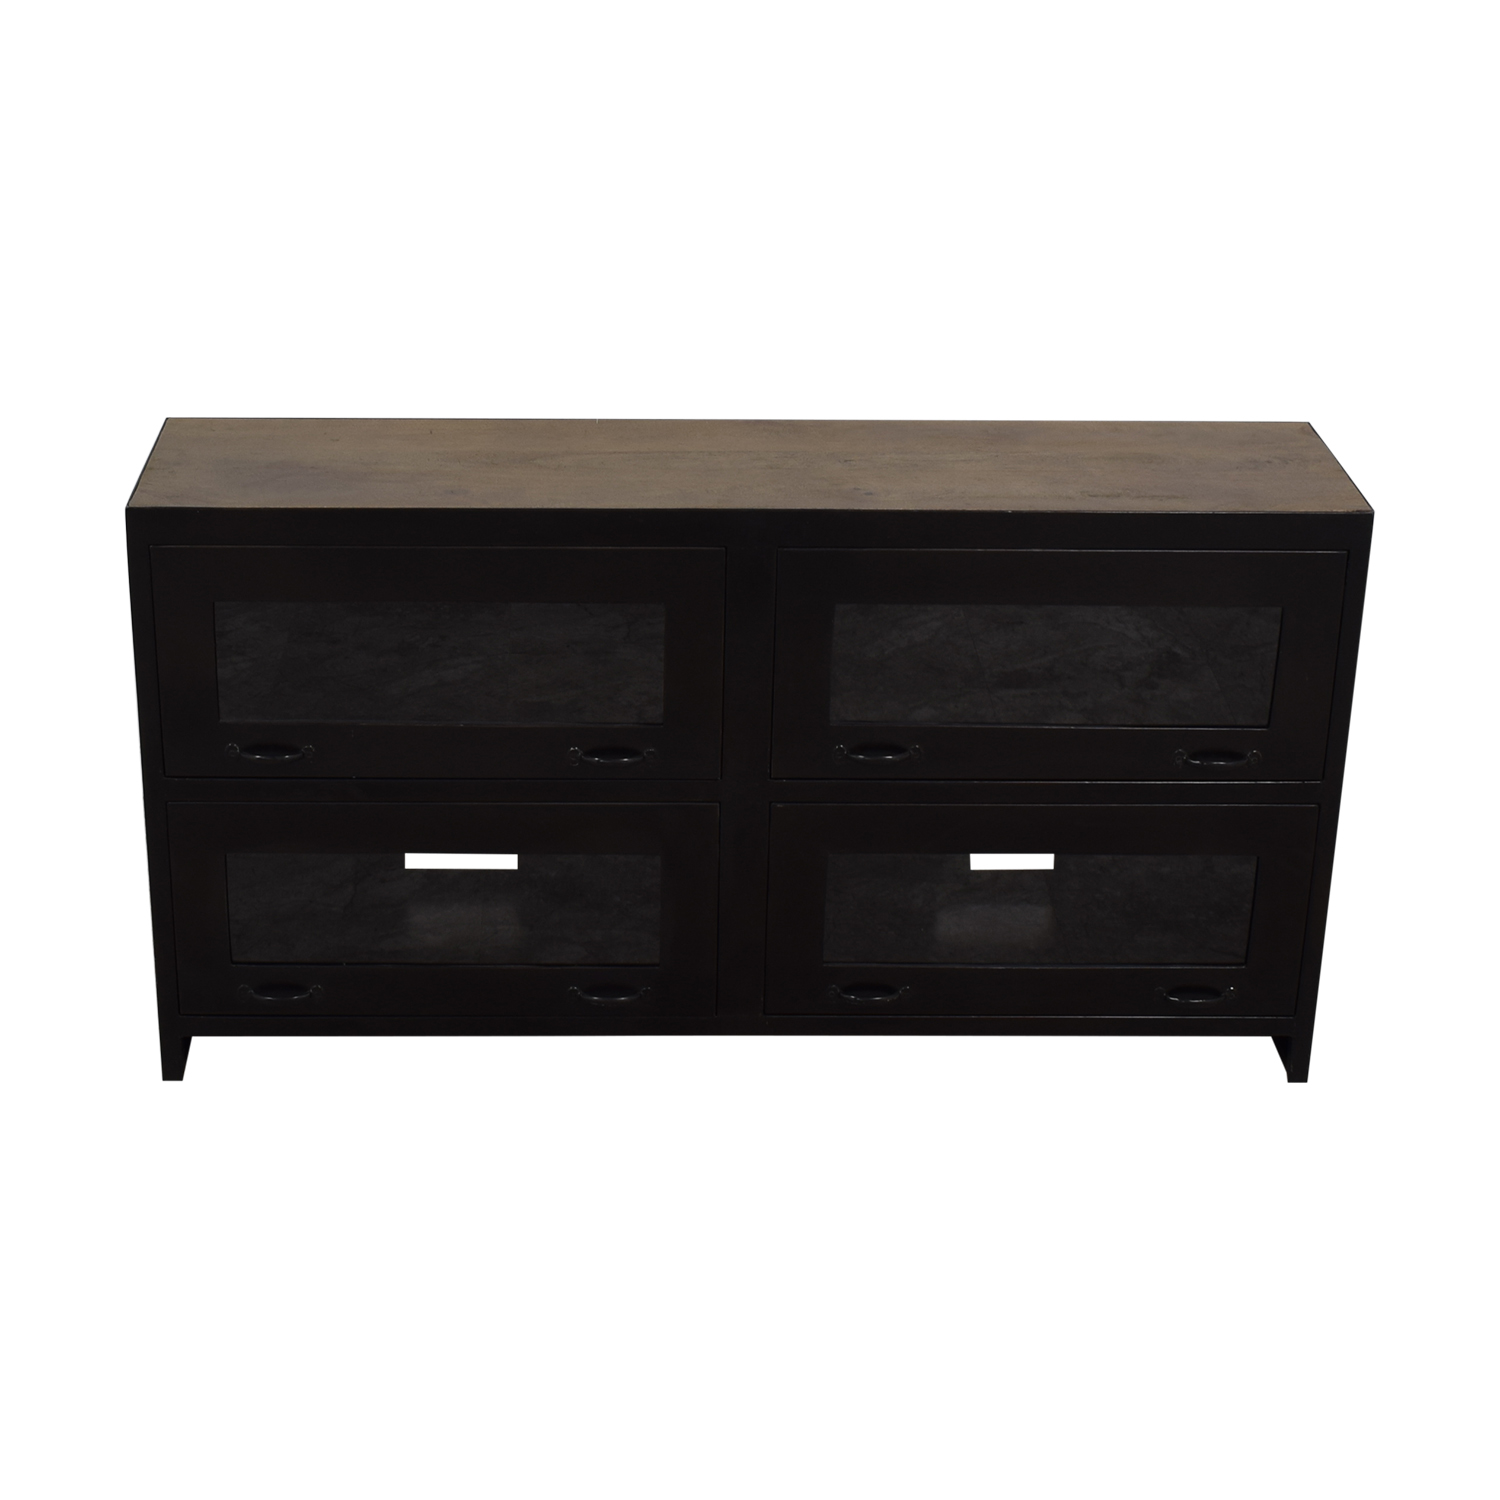 ABC Carpet & Home ABC Carpet & Home Black Walnut and Metal Glass Console nyc